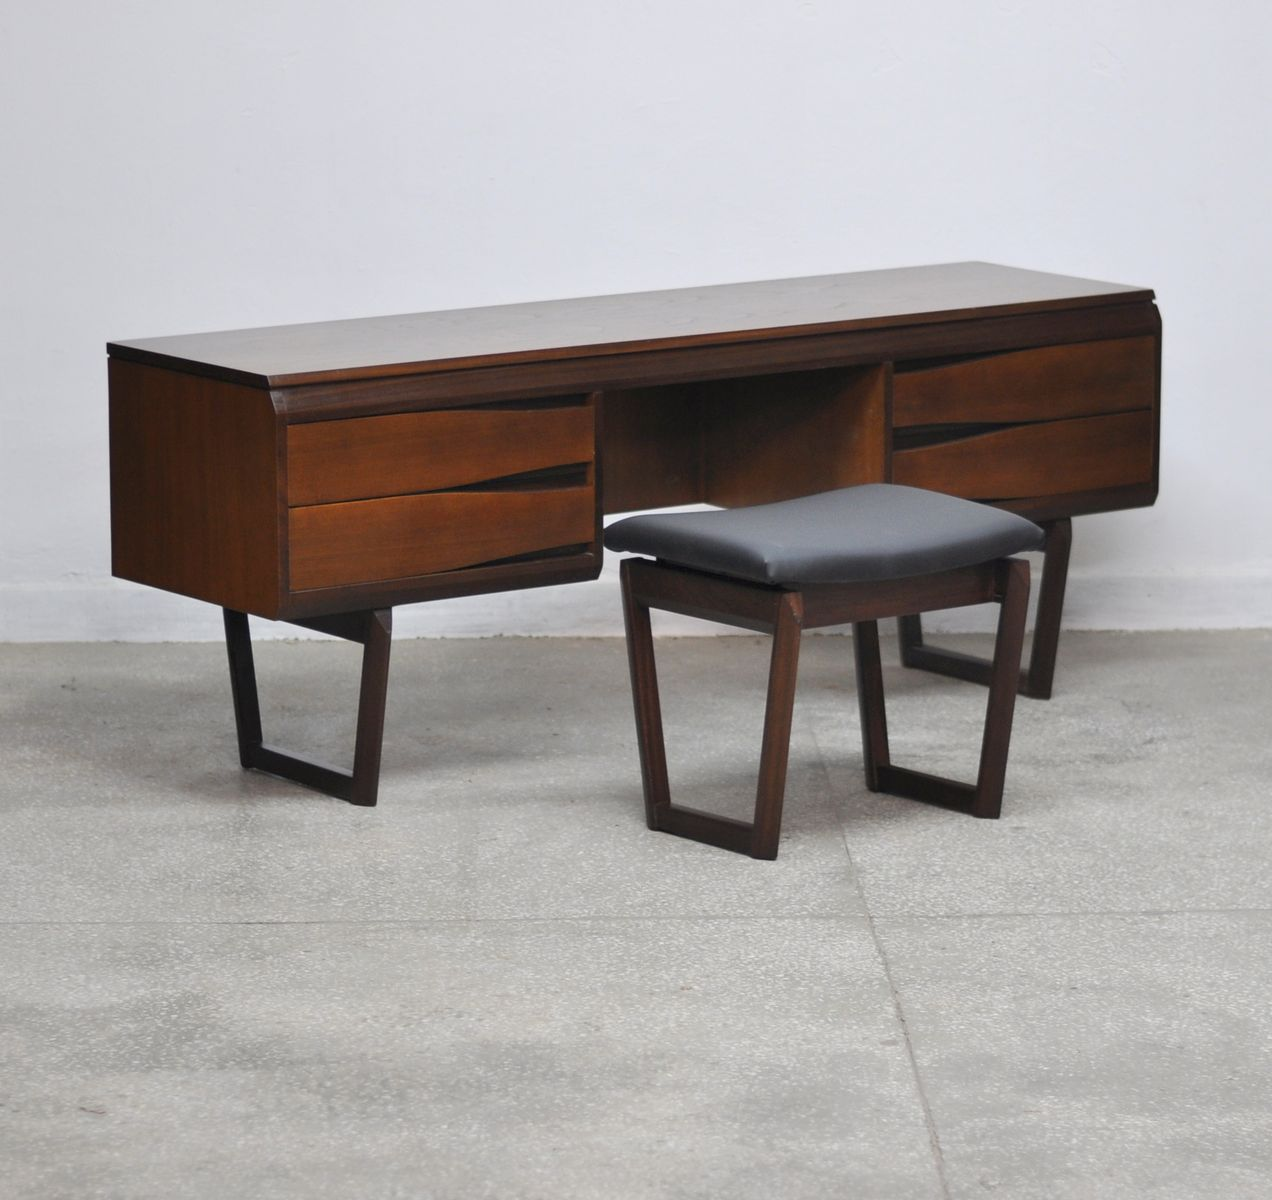 mid century teak schreibtisch hocker von white newton 1960er bei pamono kaufen. Black Bedroom Furniture Sets. Home Design Ideas